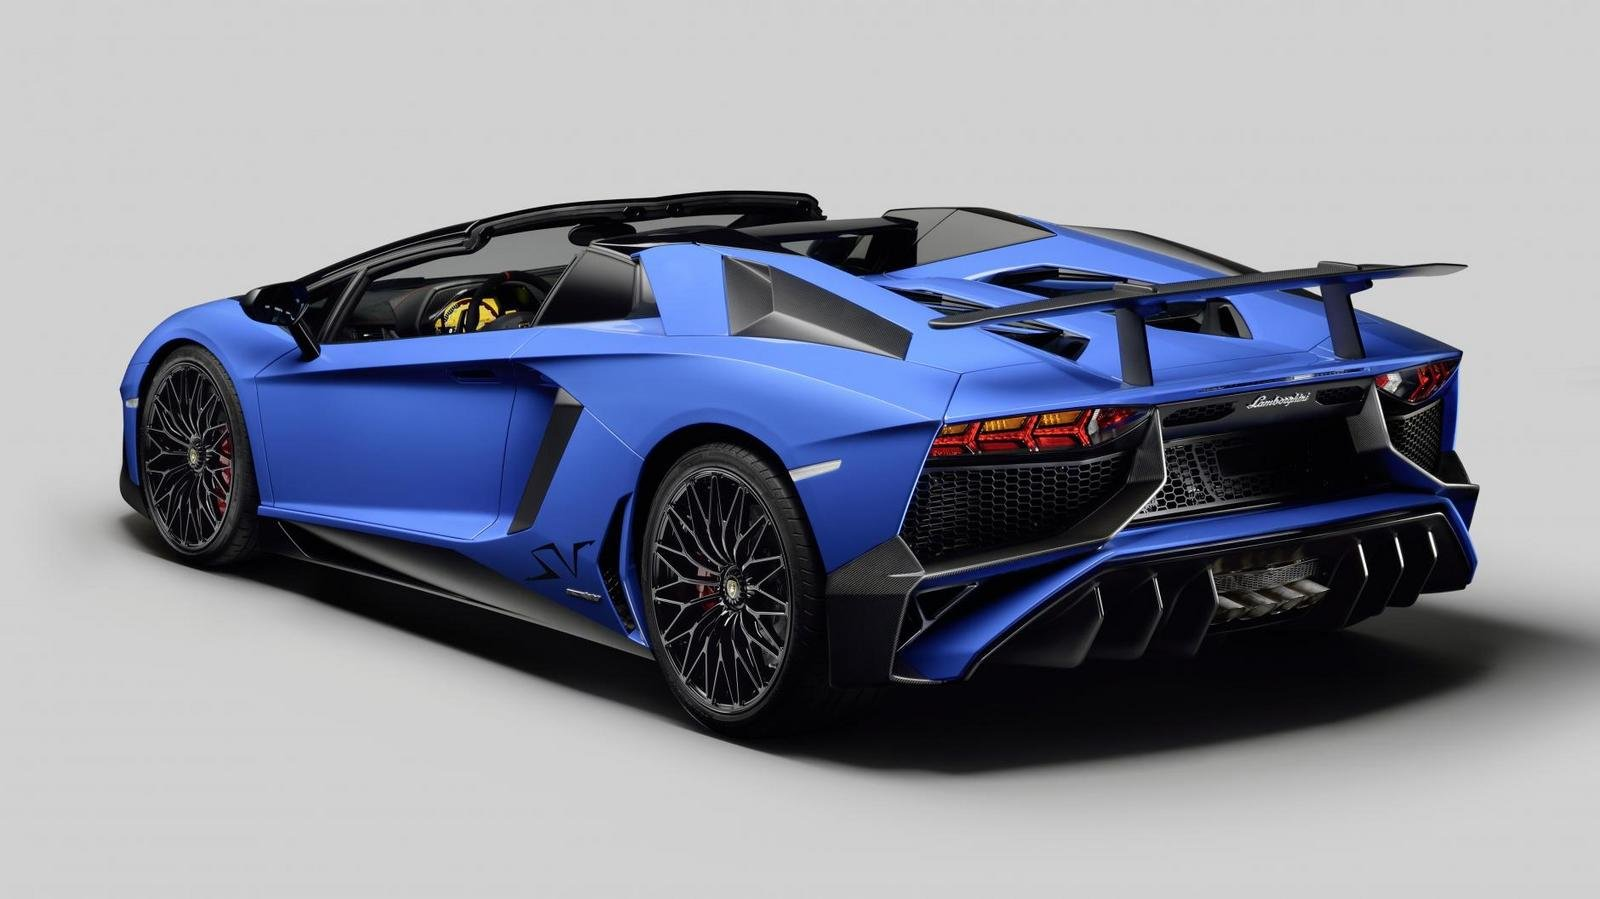 2016 lamborghini aventador sv roadster picture 640485 car review top speed. Black Bedroom Furniture Sets. Home Design Ideas